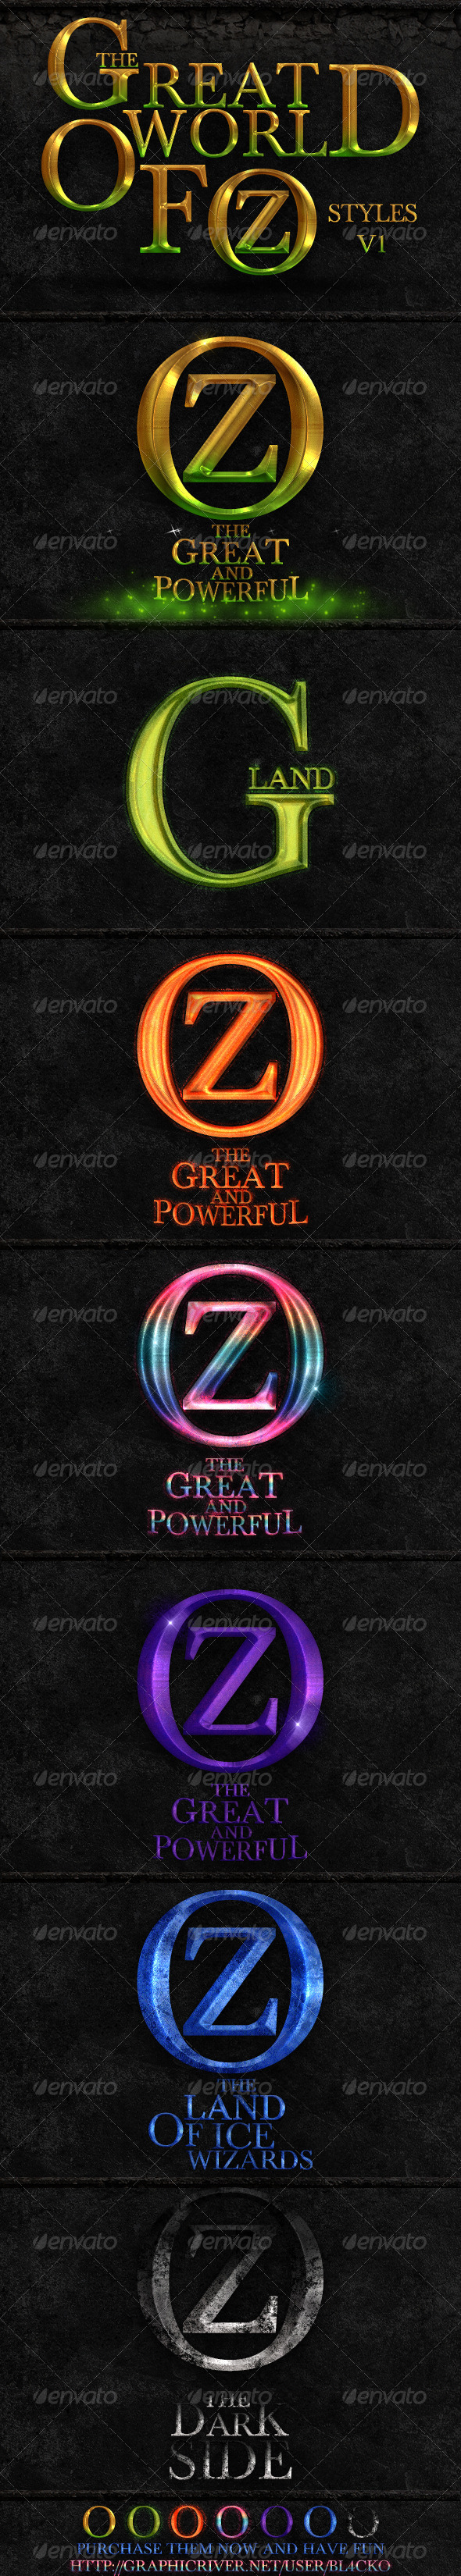 GraphicRiver The Great World Of Oz Styles V1 4599699